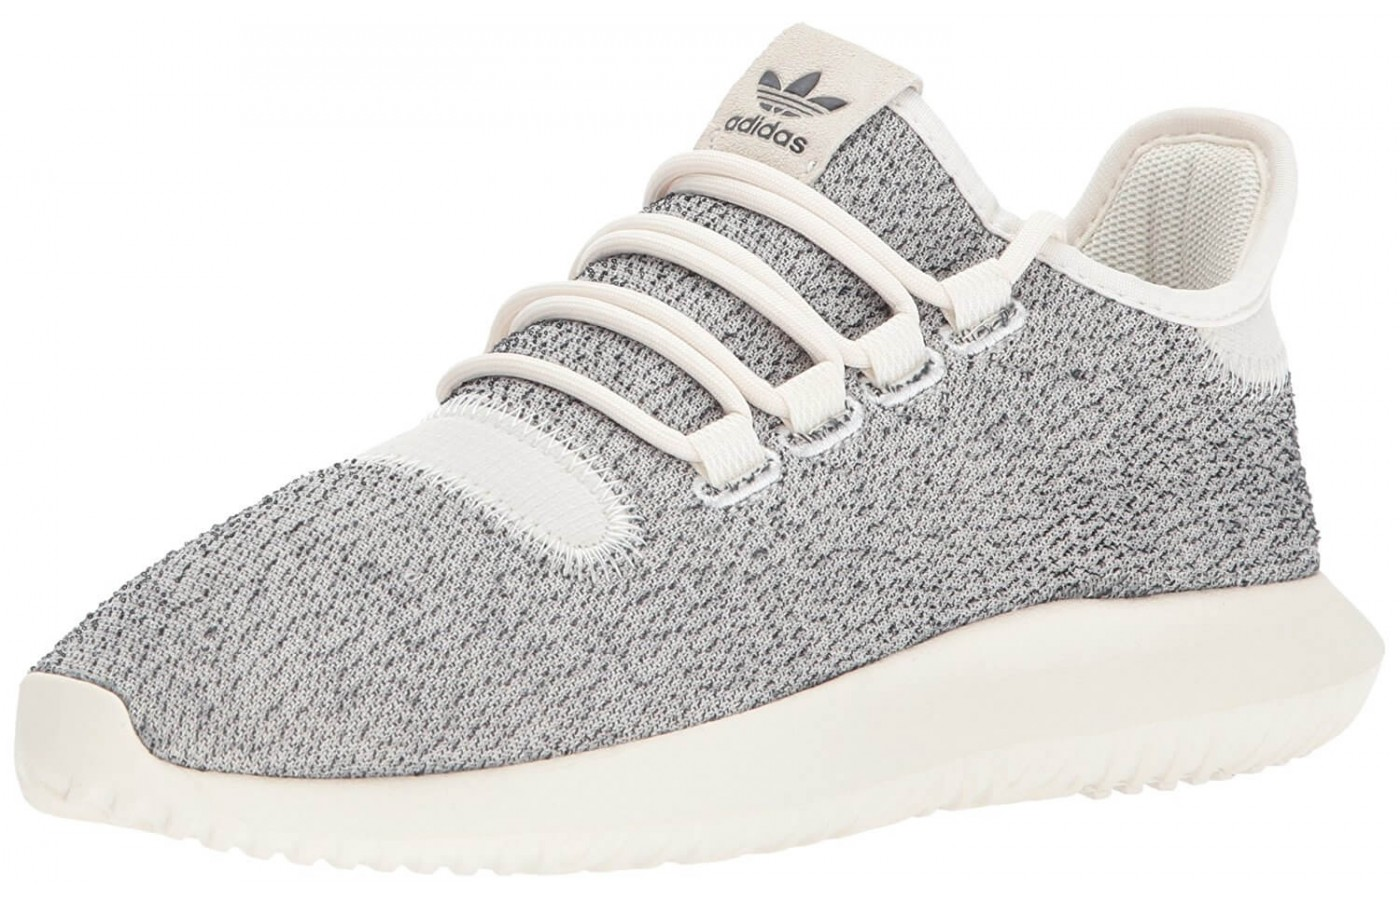 los angeles a13d5 d55e4 The Adidas Tubular Shadow features EVA cushioning ...